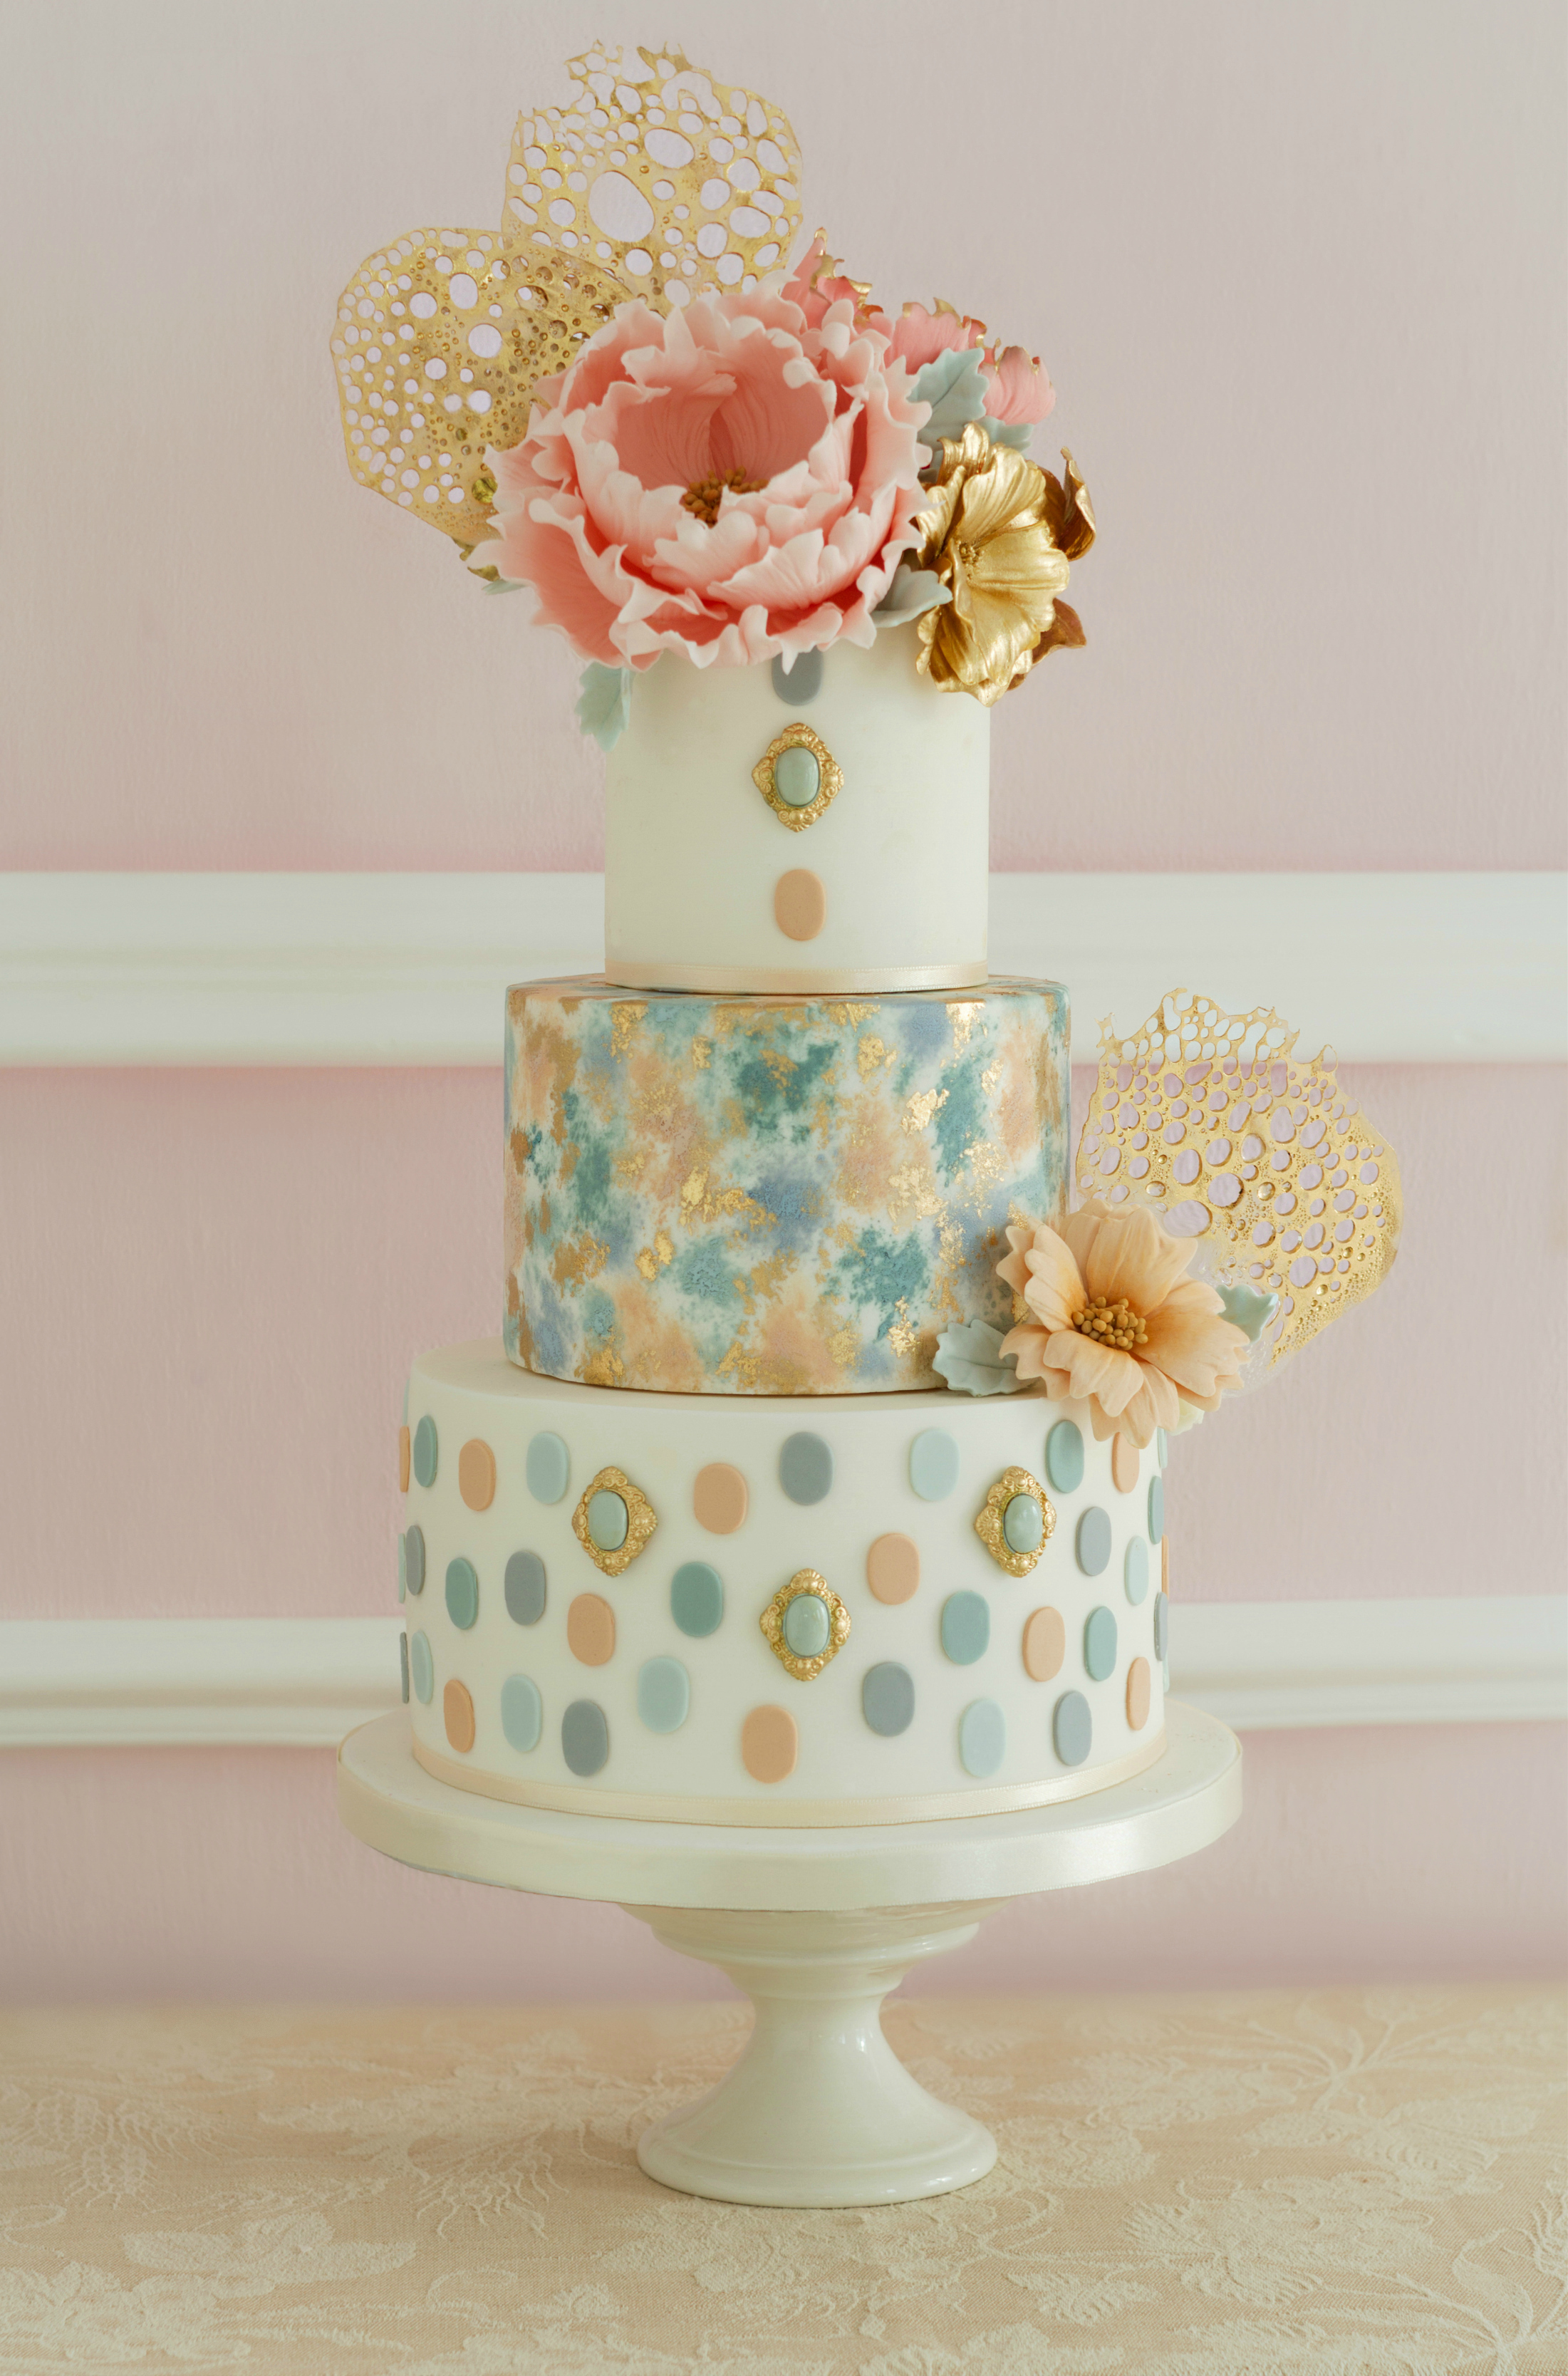 Vintage wedding with polka dots